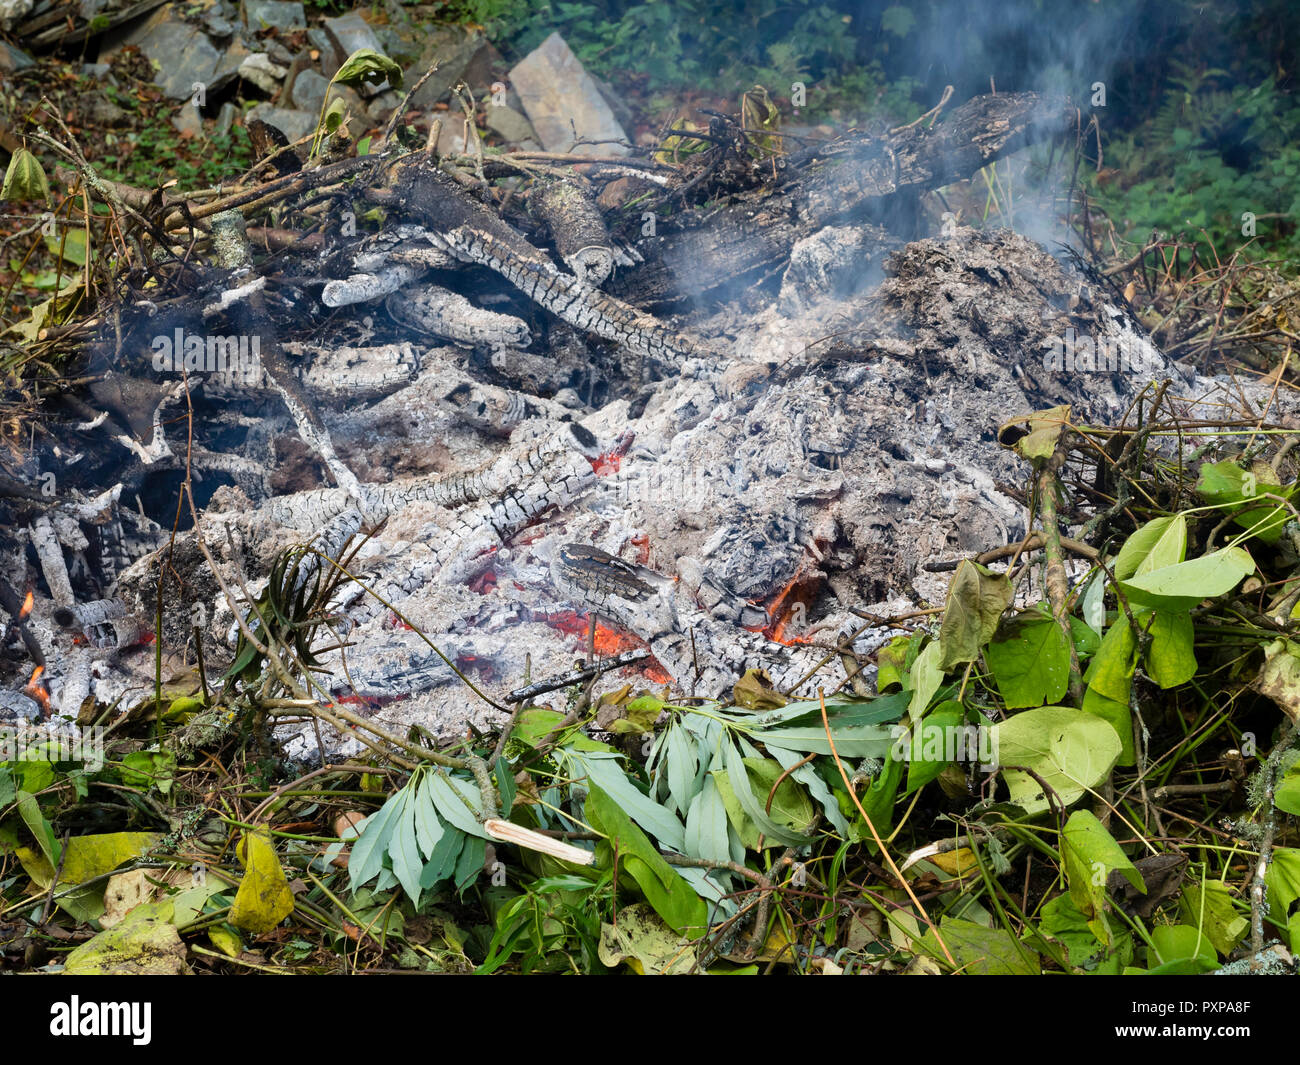 Burning garden waste on an autumn bonfire to produce wood ash and help disease control - Stock Image